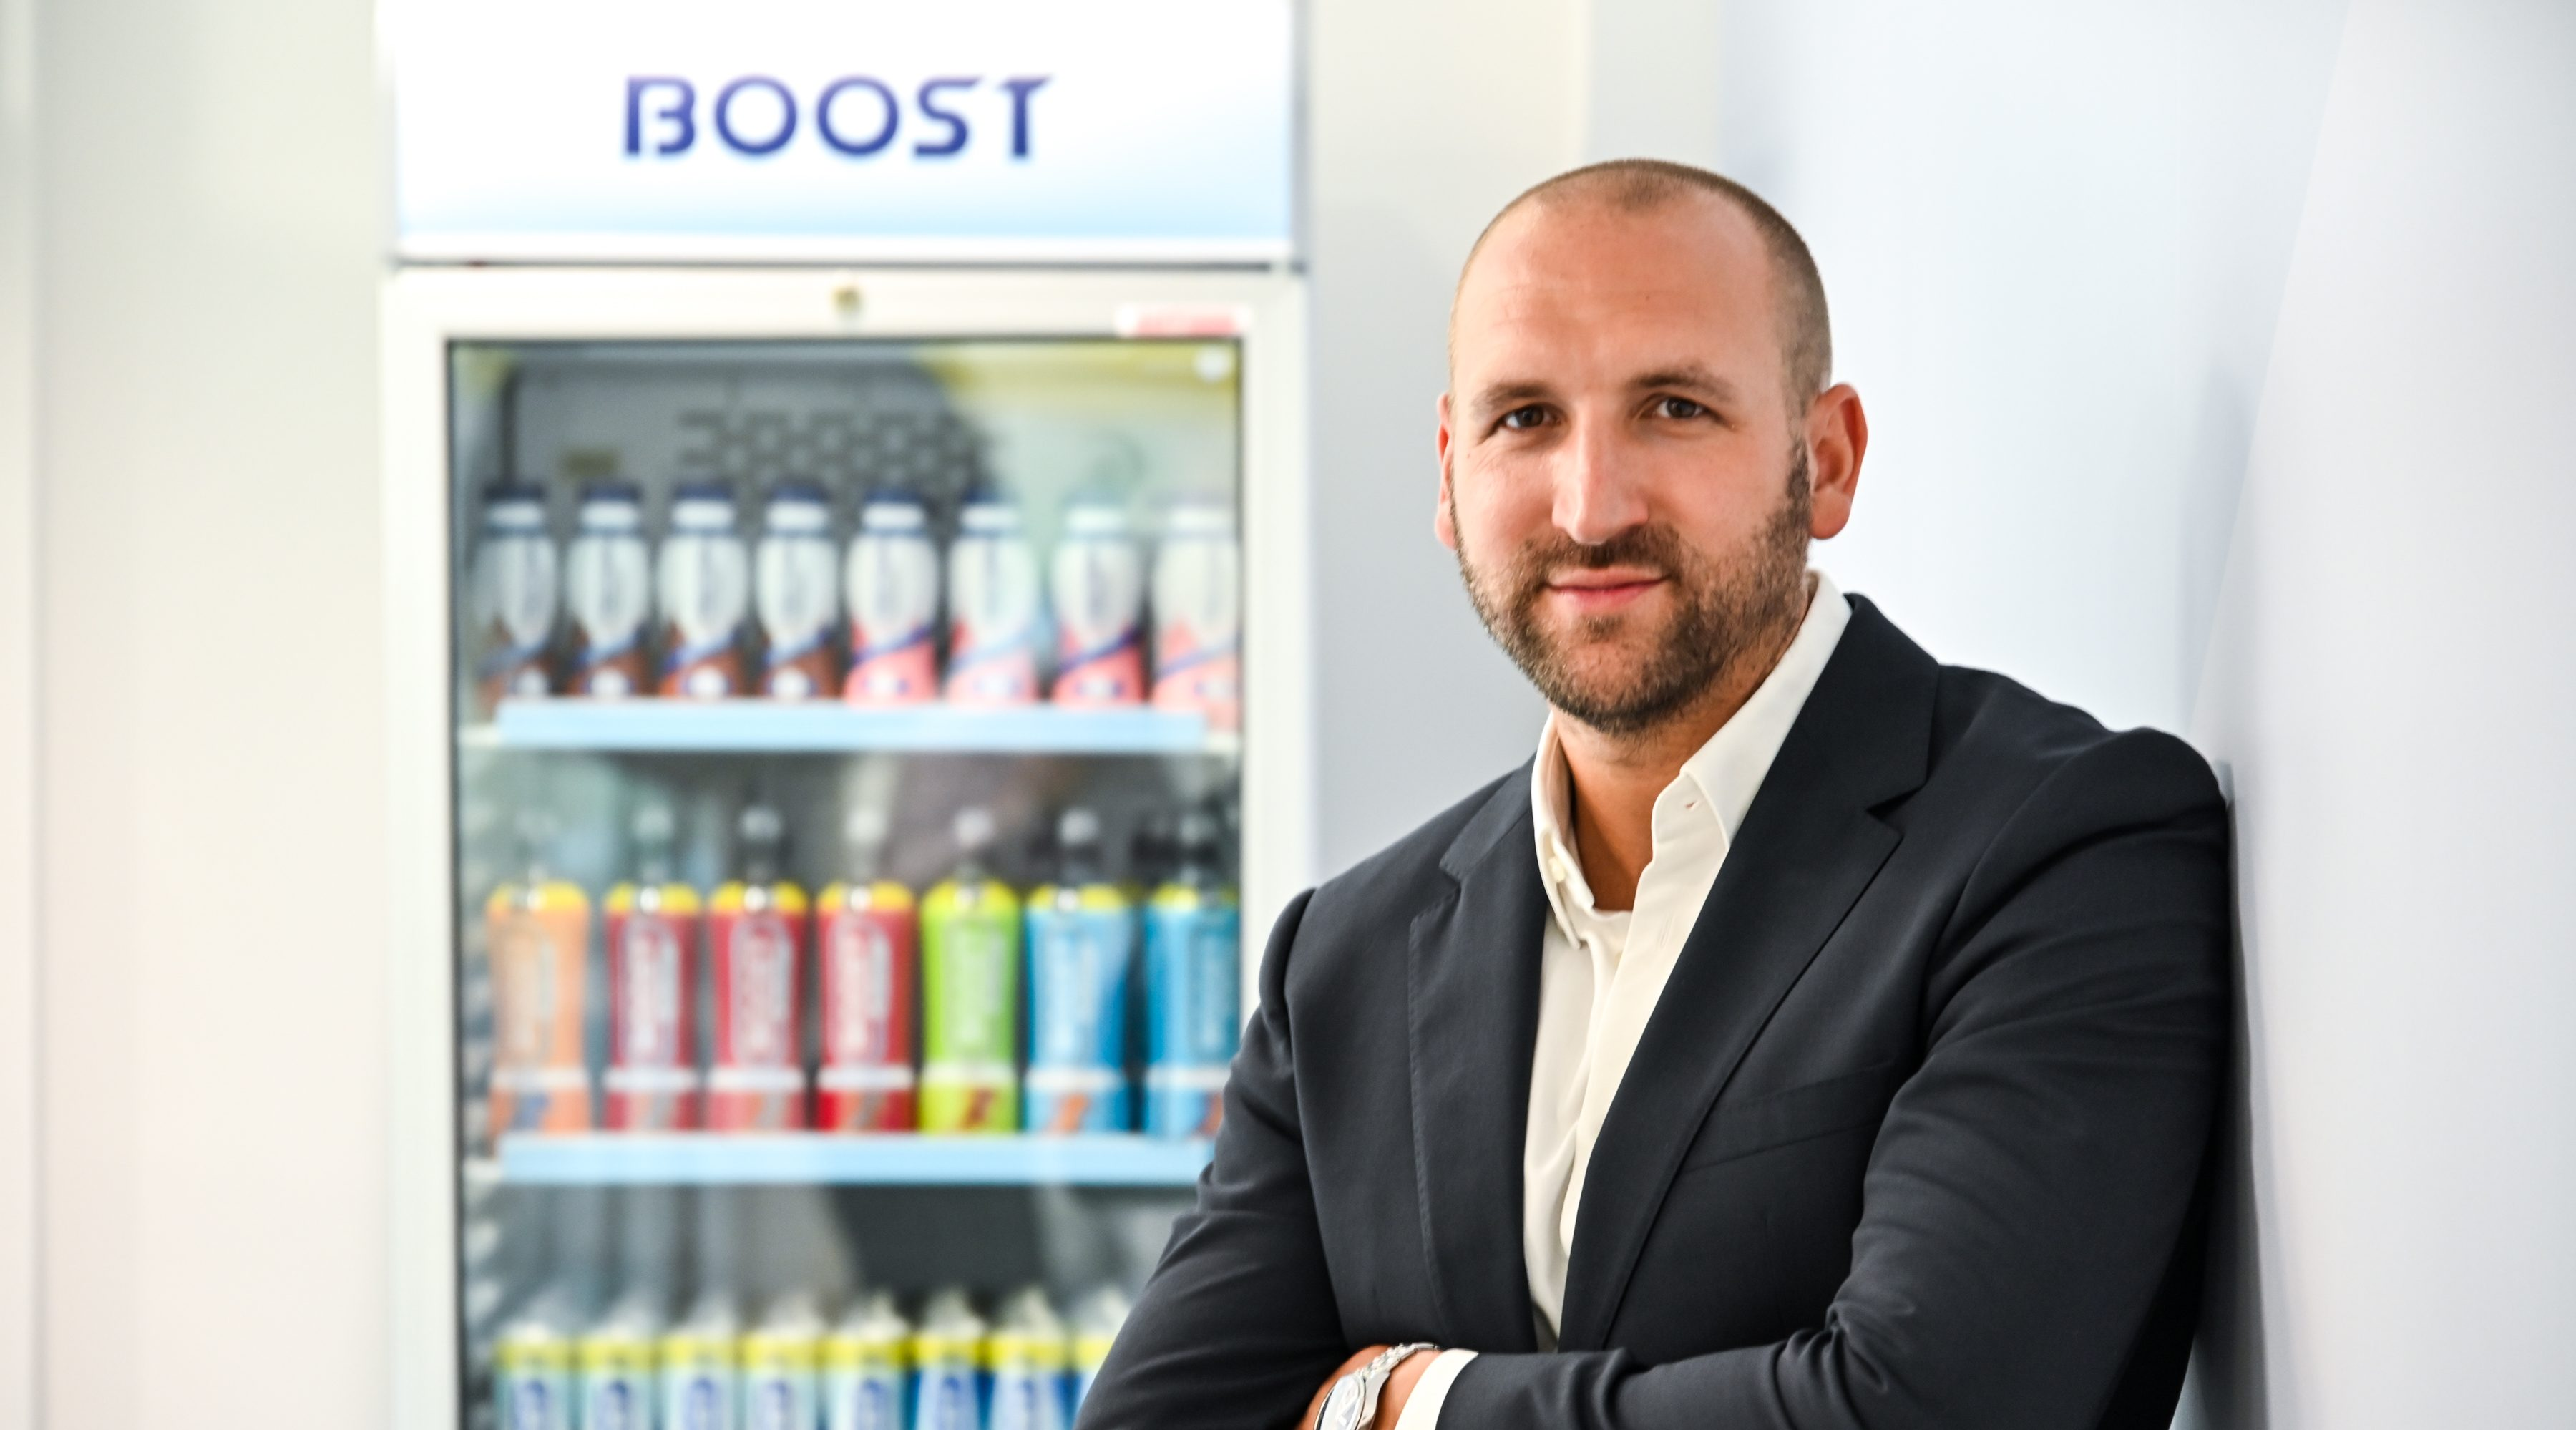 Boost Drinks appoints new marketing director